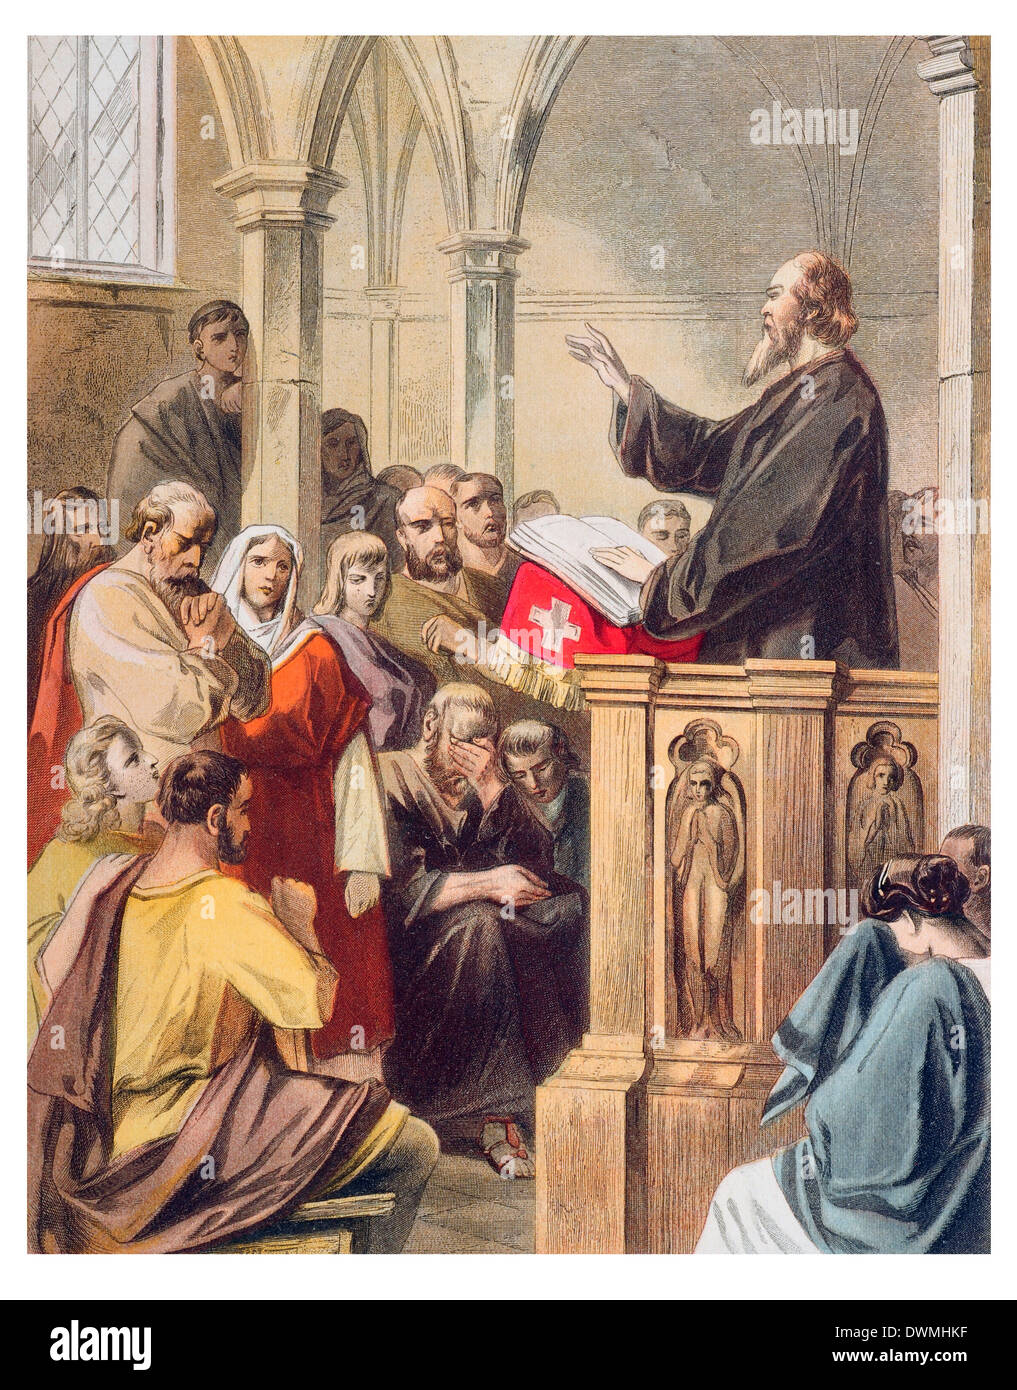 Conscience preaching in Mansoul - Stock Image